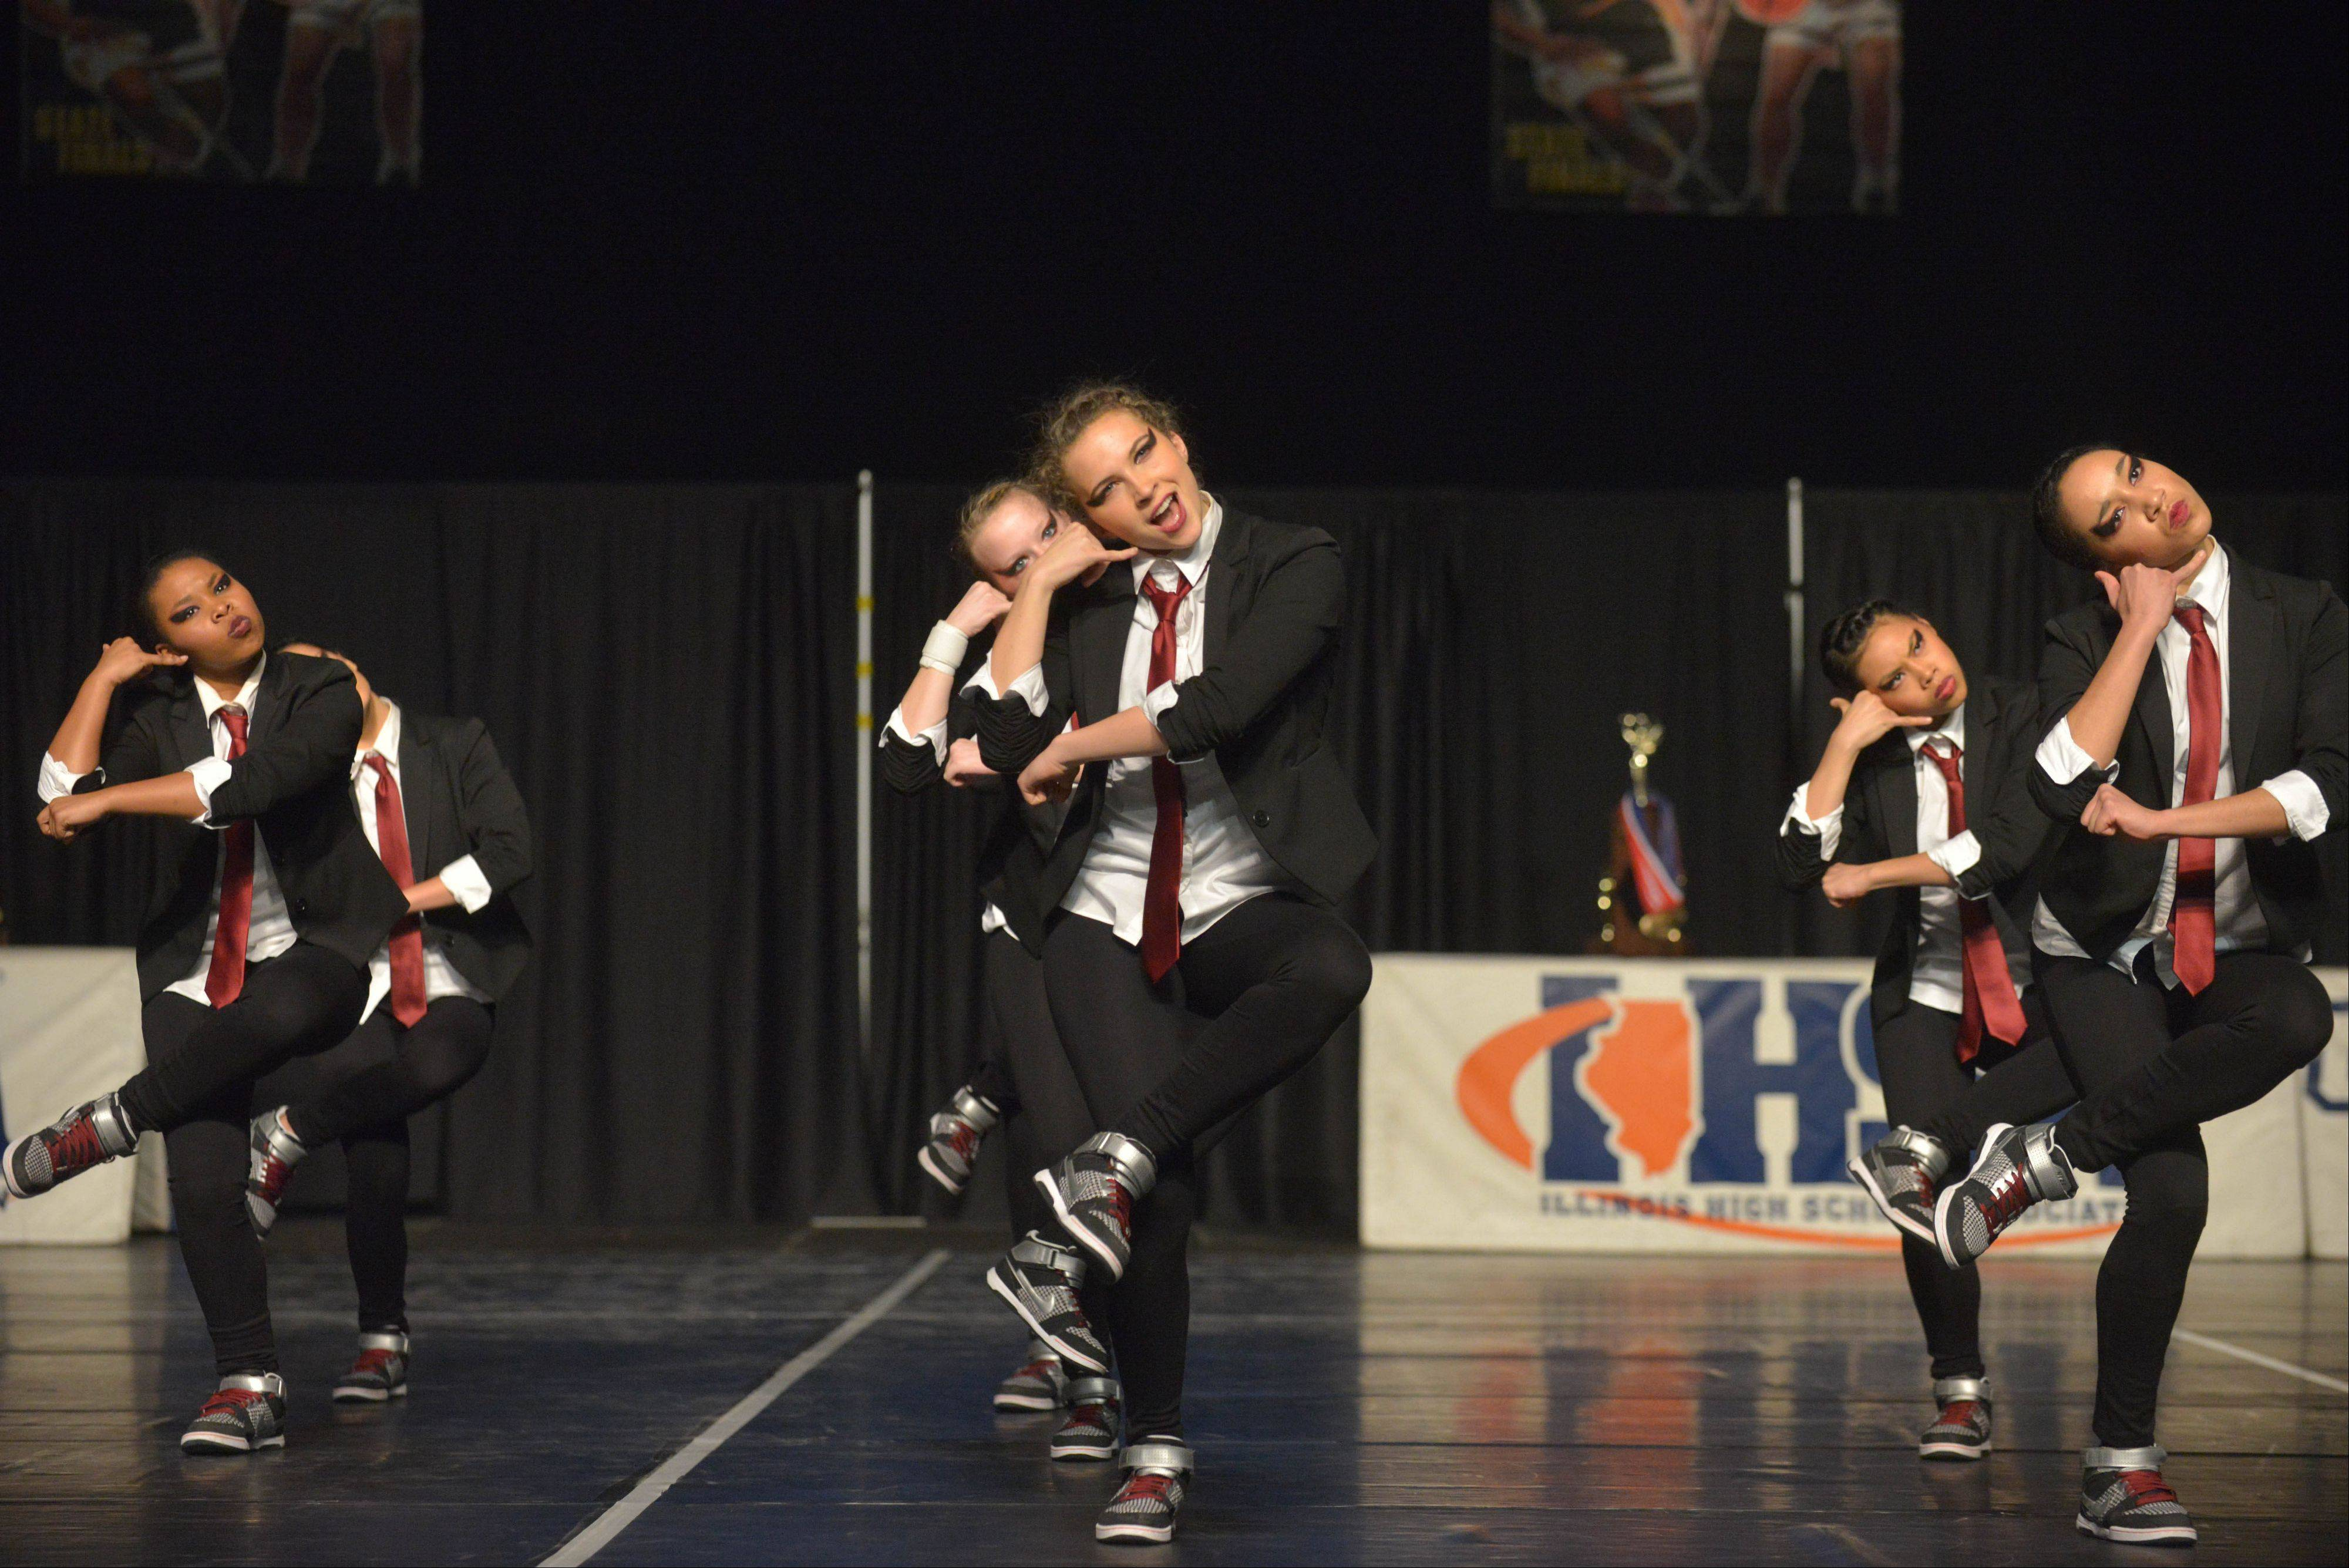 Warren High School took part in the IHSA Dance State Final at U.S. Cellular Coliseum in Bloomington Saturday. 90 teams vied for state champion at this event.